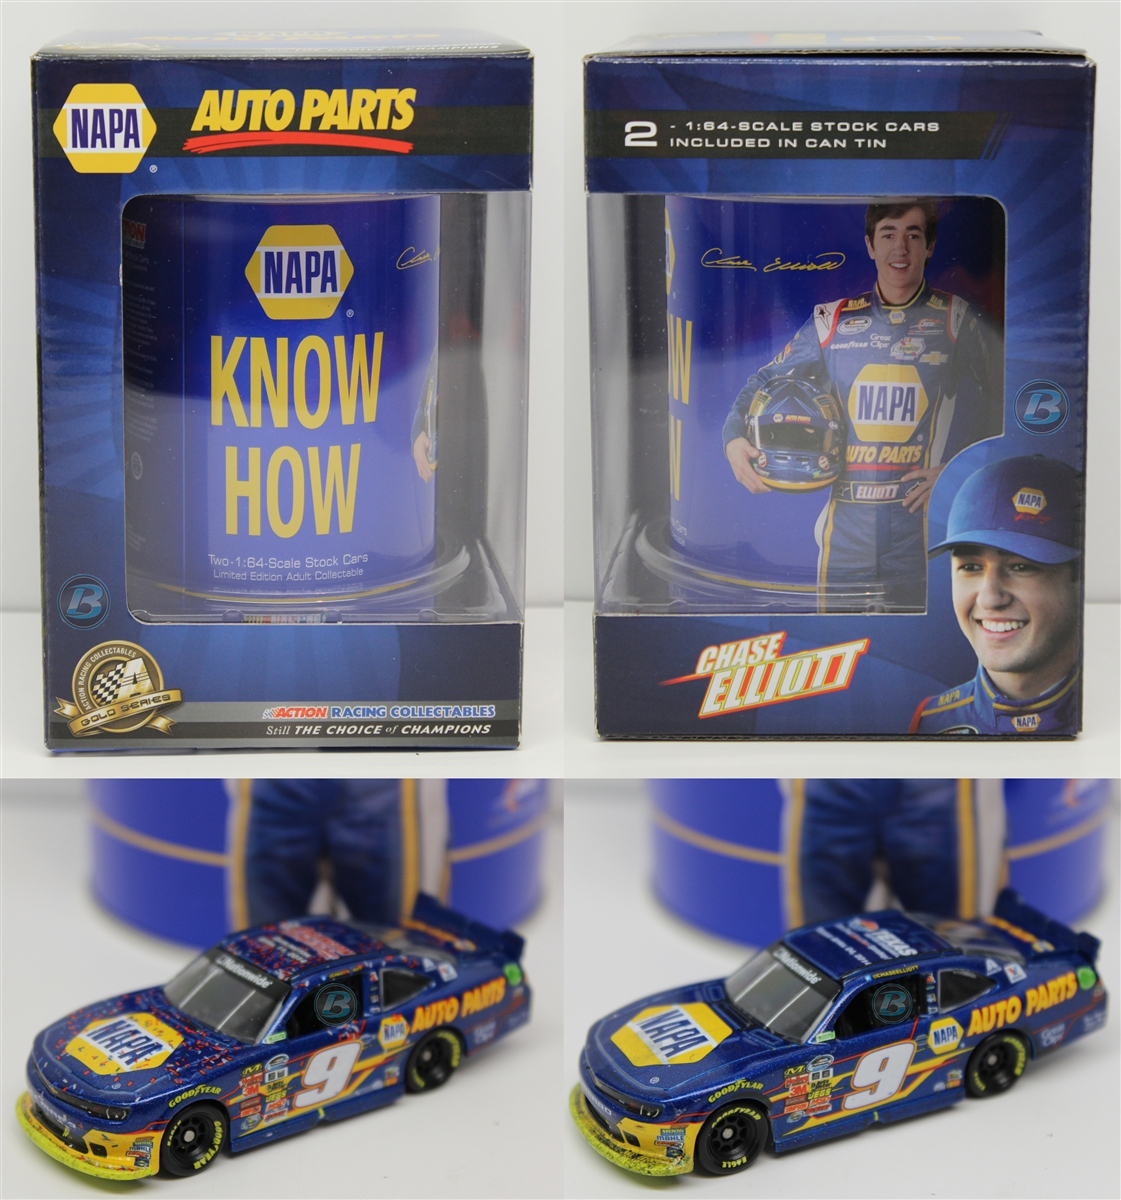 Chase Elliott 2014 Napa Know Can 2 Car Win 1:64 Nascar Diecast by Lionel Racing